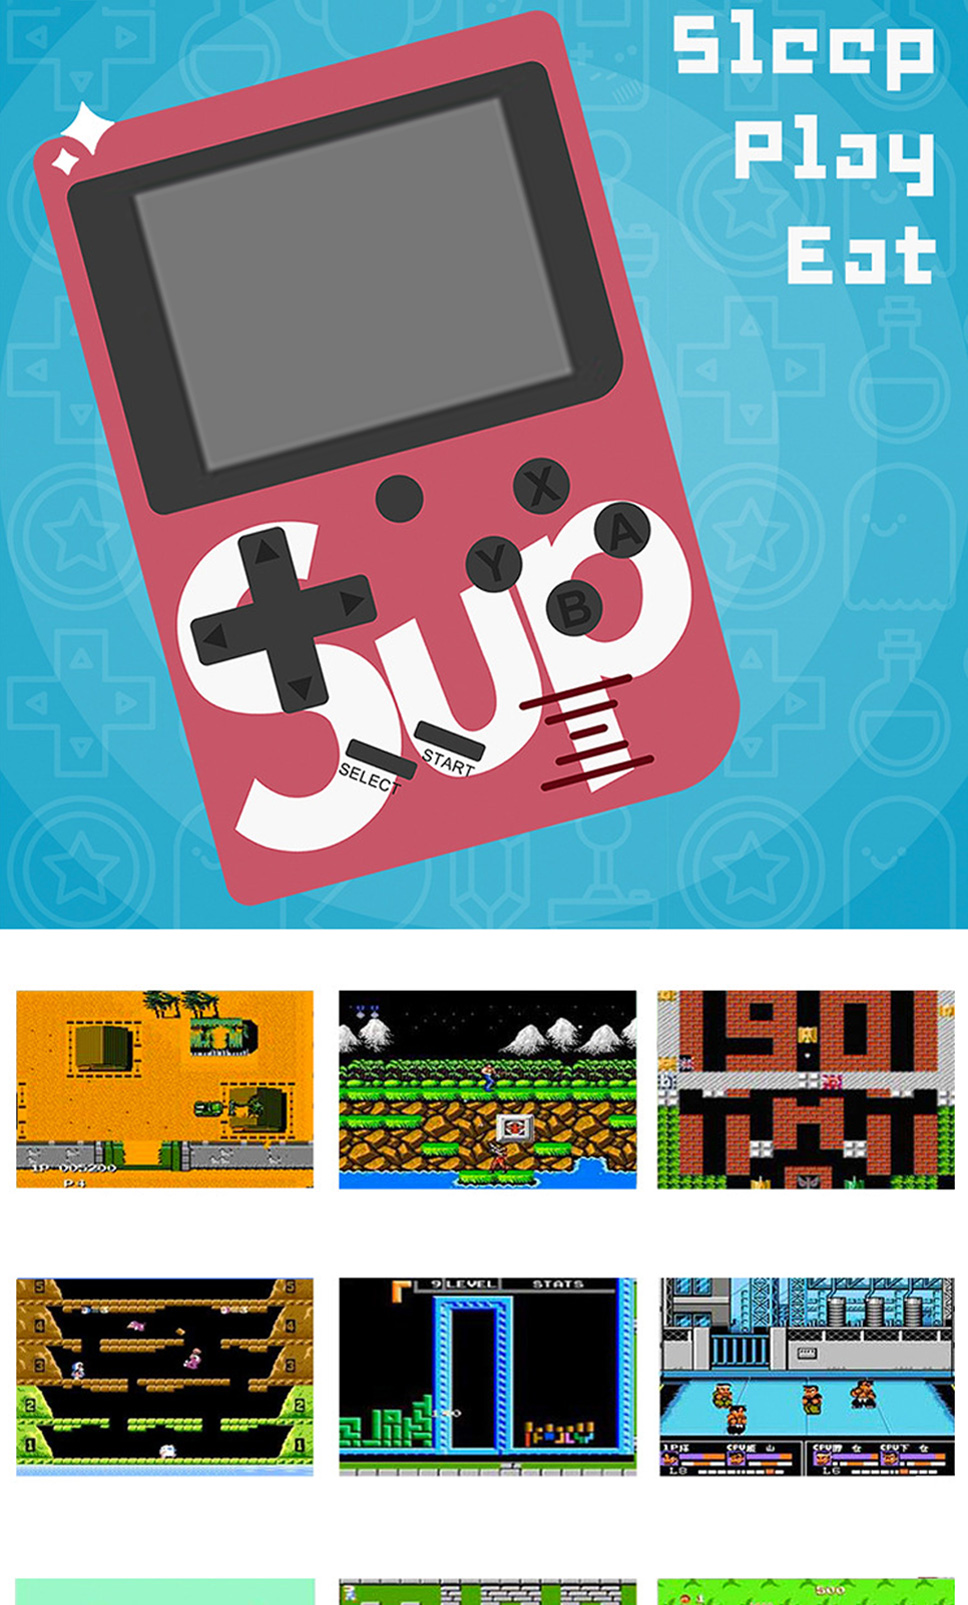 Sup X Game Box Retro Handheld Game Console Rechargeable Game Player  Machine, Built-in 129 Classic Games red